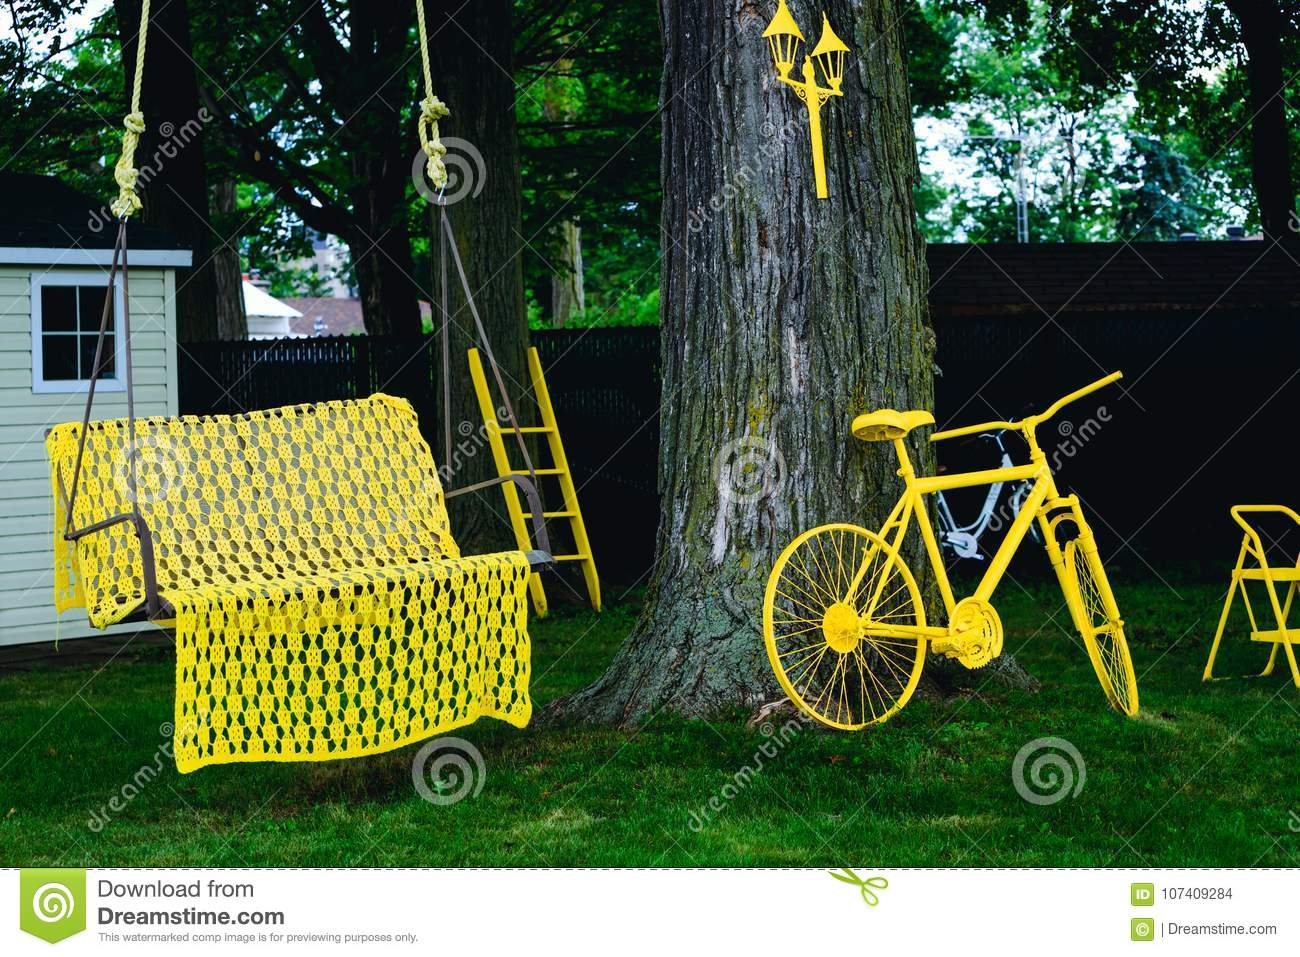 The cradle of childhood. Decorative art objects on the home yard. Summer or Autumn rest area.